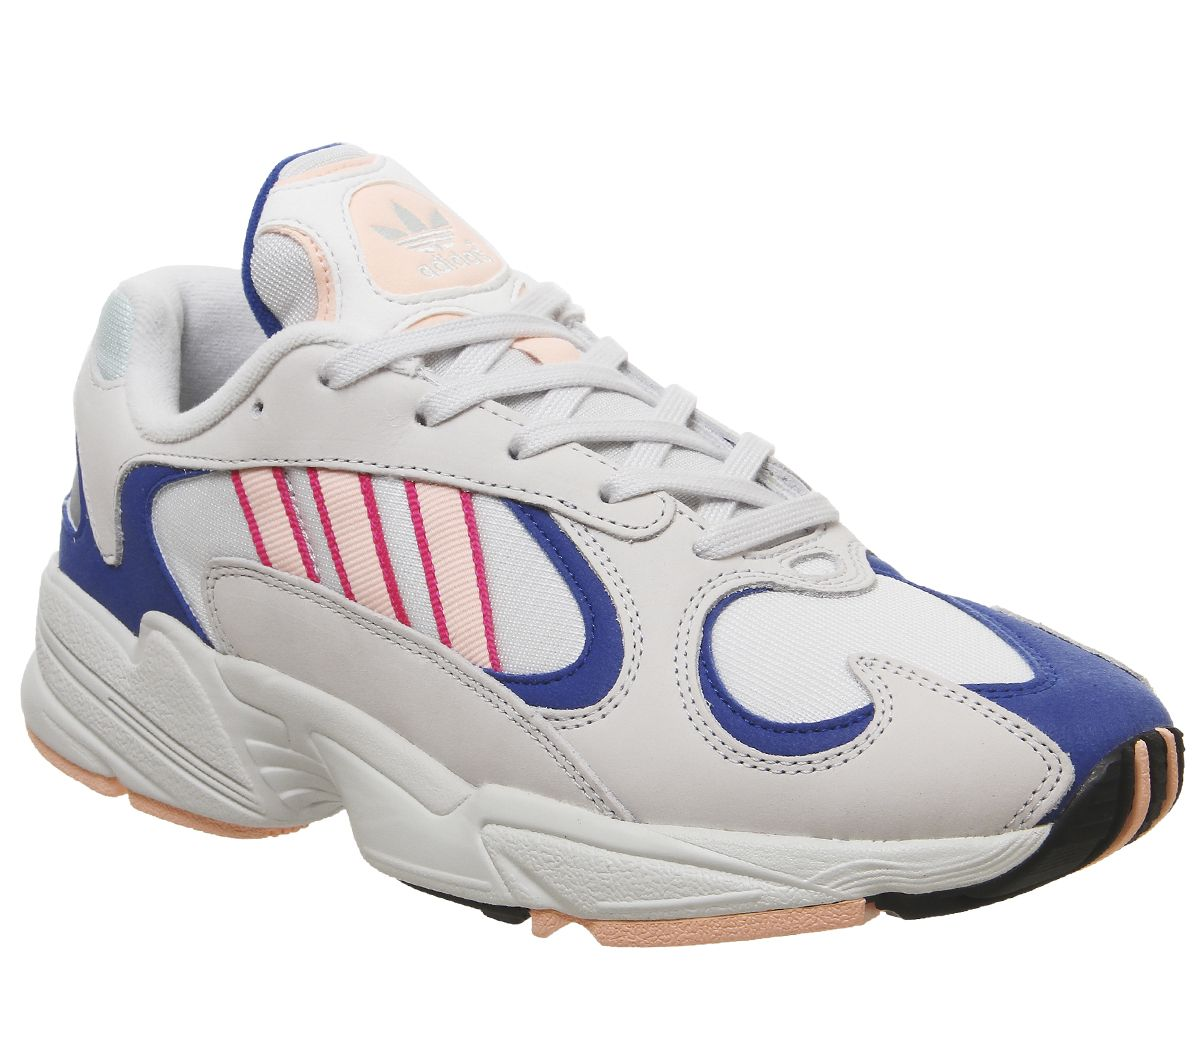 3ab1aaa4ba8 adidas Yung 1 Trainers Crystal White Clear Orange Collegiate Royal ...